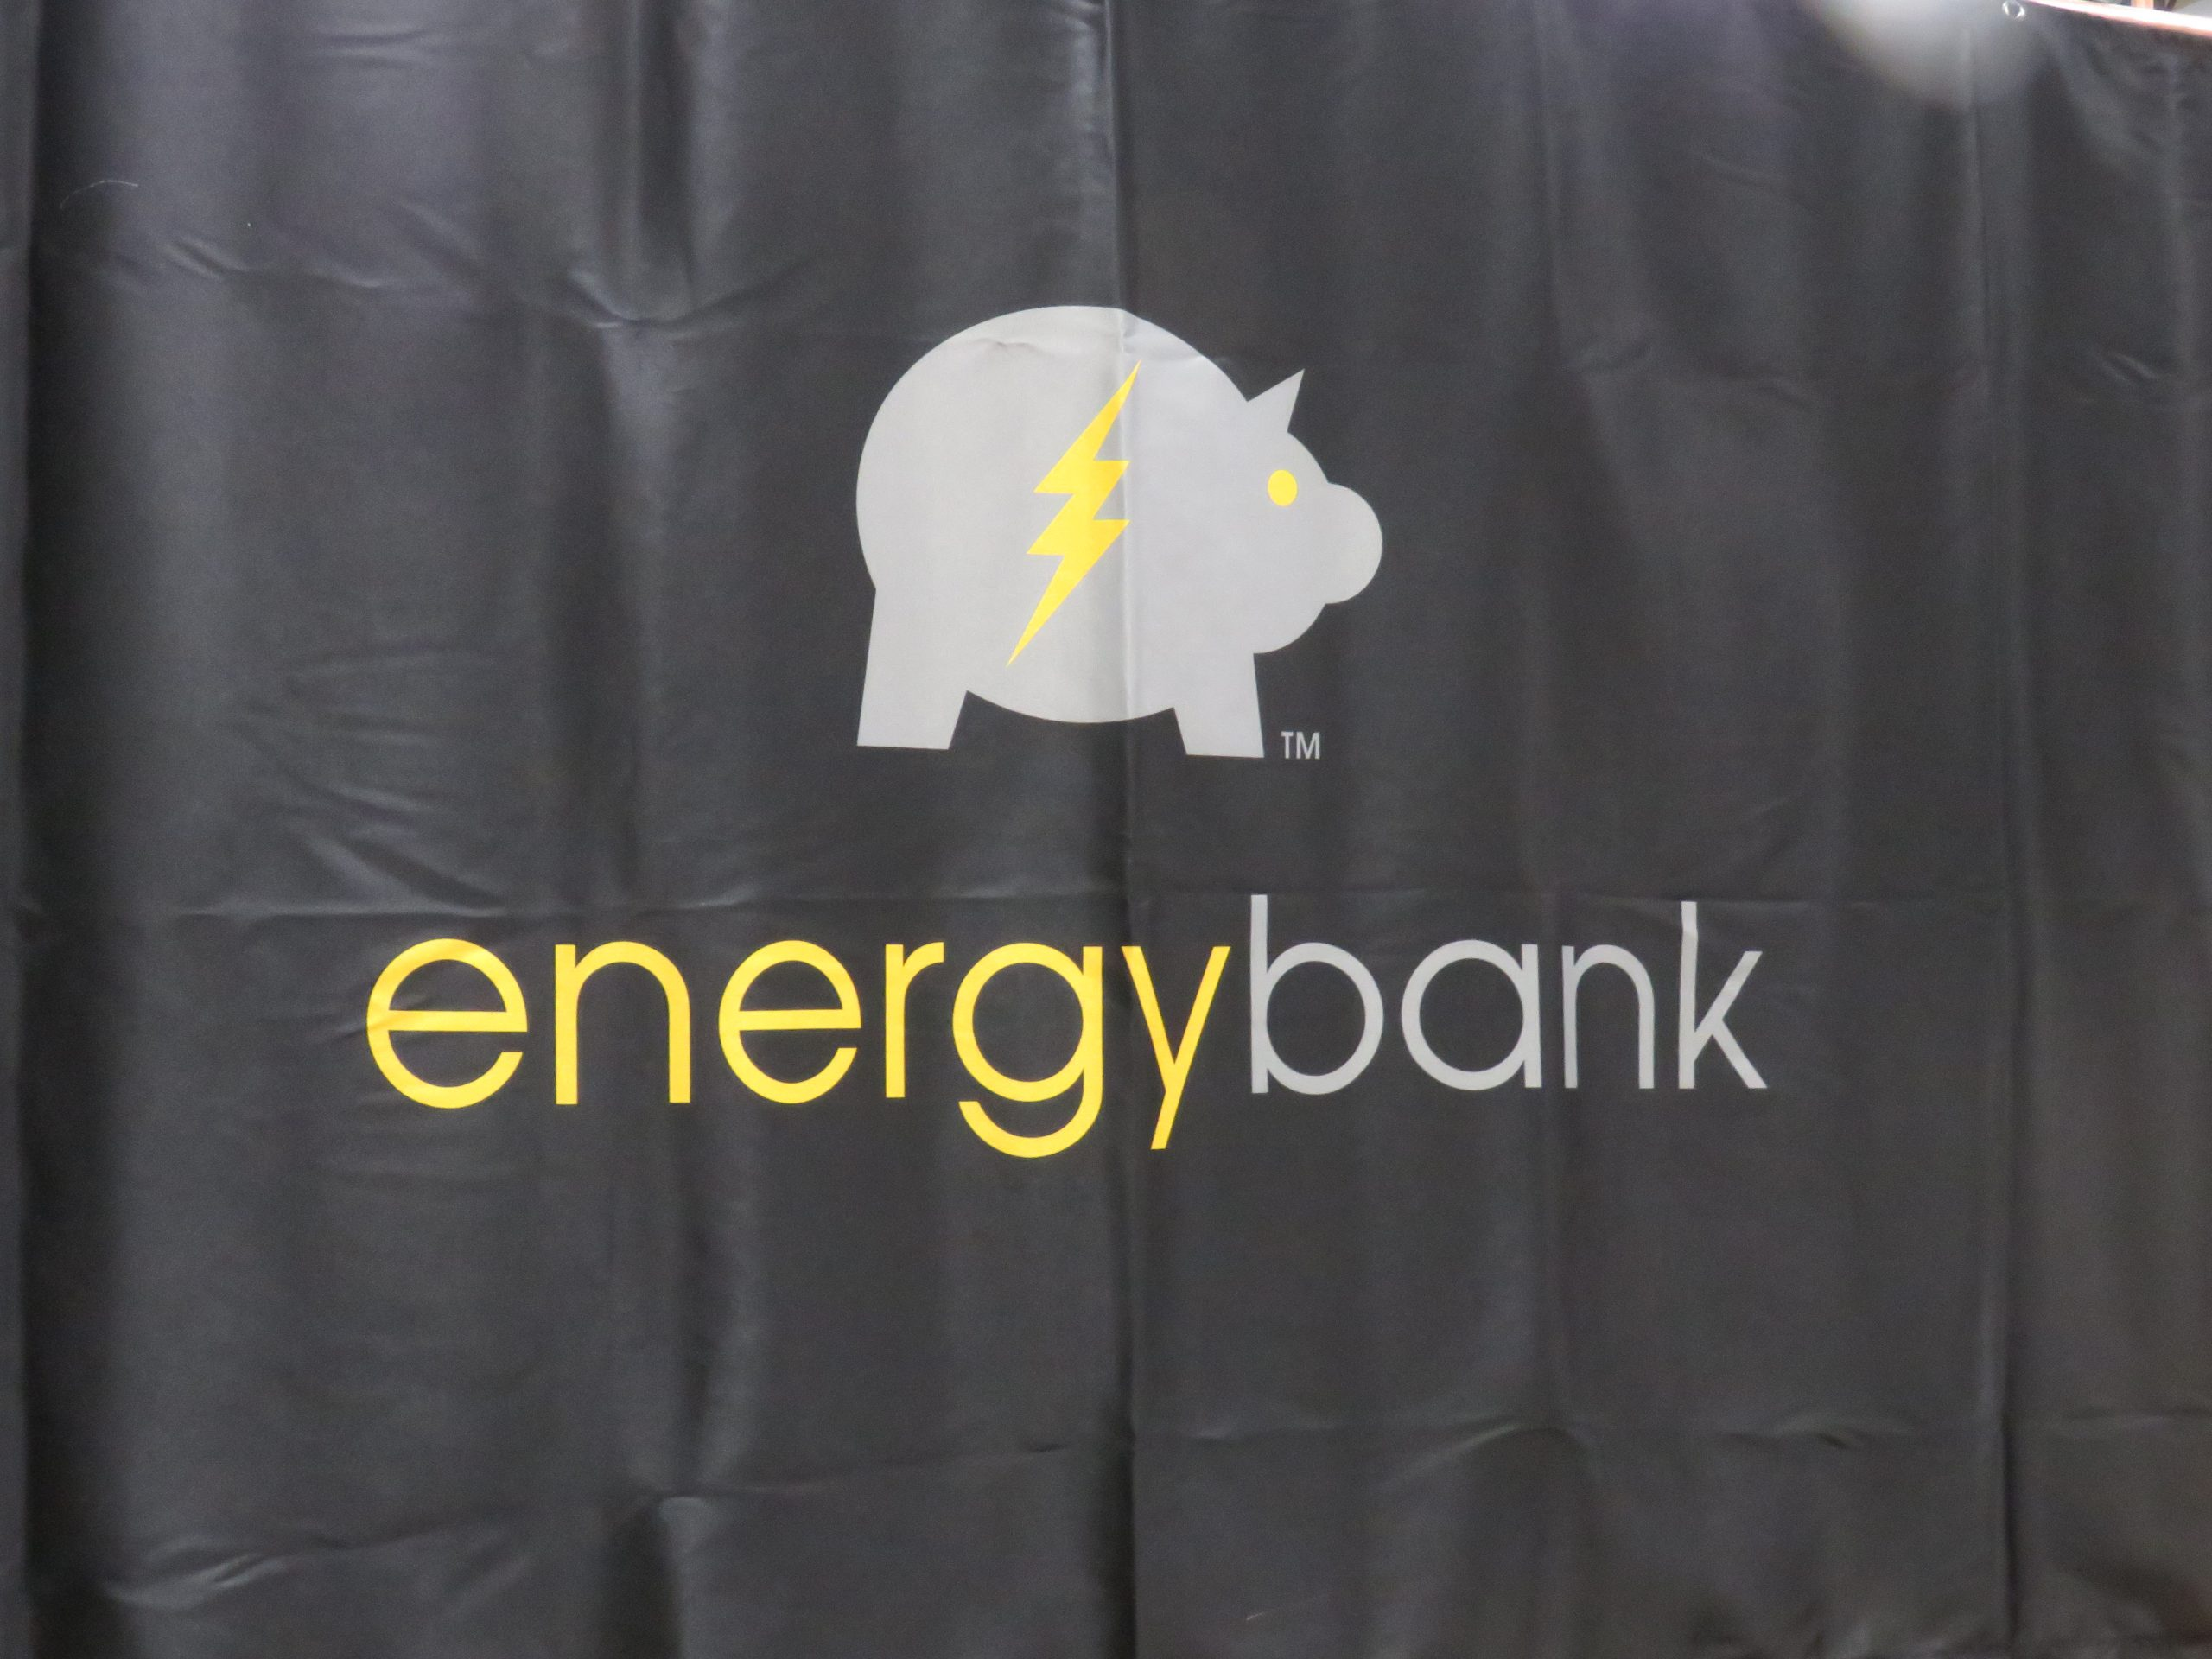 EnergyBank Named as a Stop in the Wisconsin Solar Tour